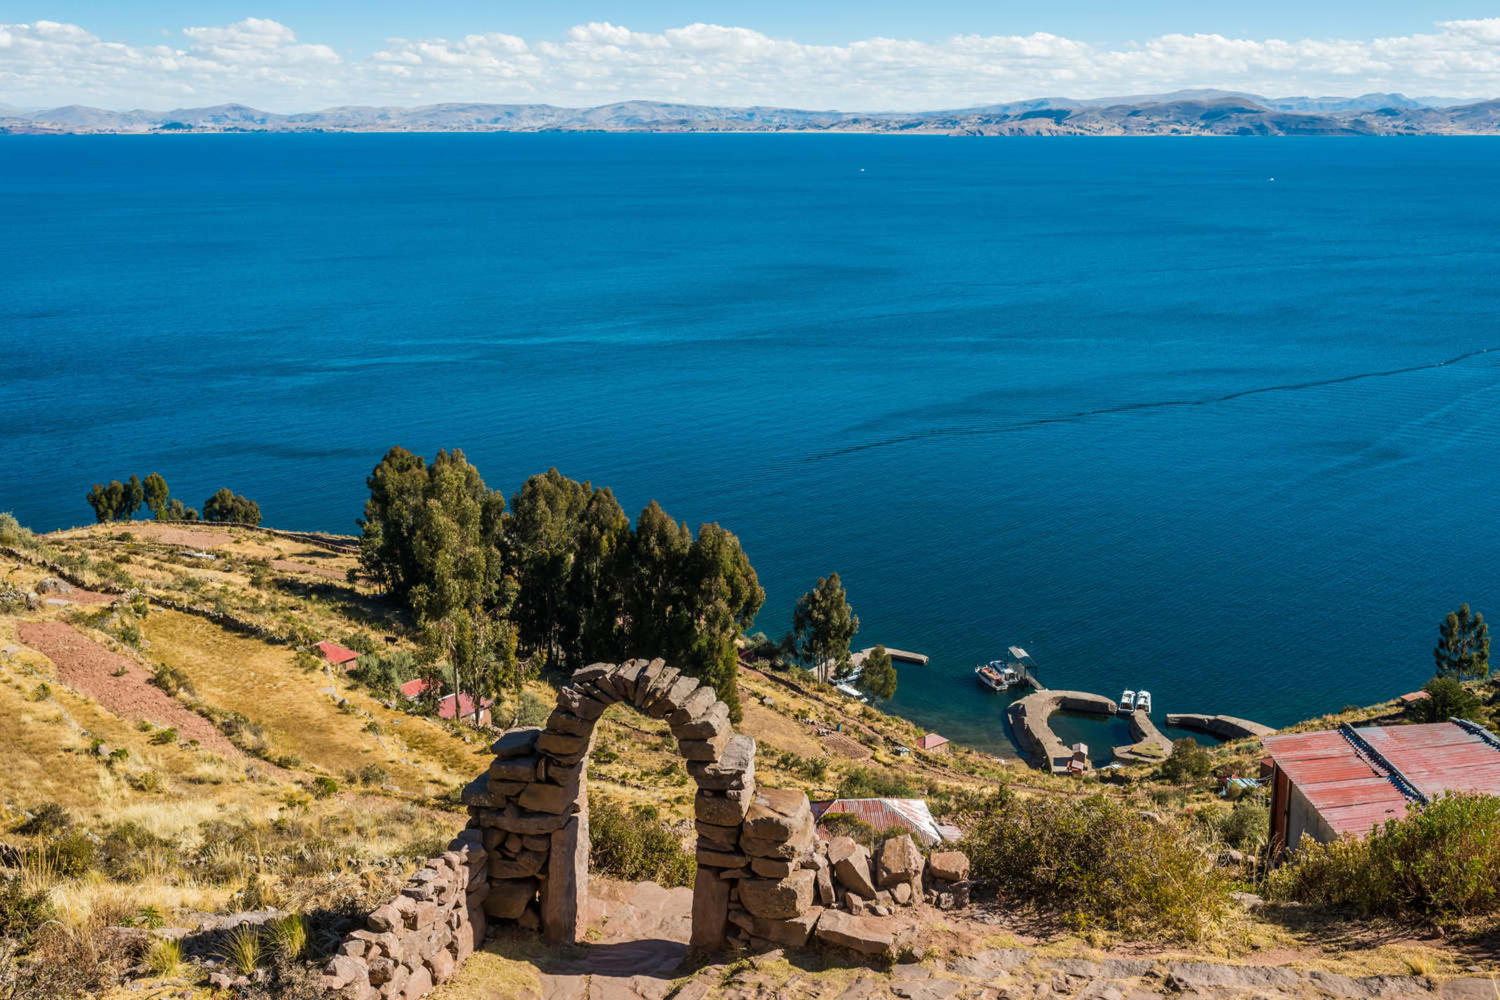 peru-lake-titicaca-titicaca-lake-from-taquile-island-in-the-peruvian-andes-at-puno